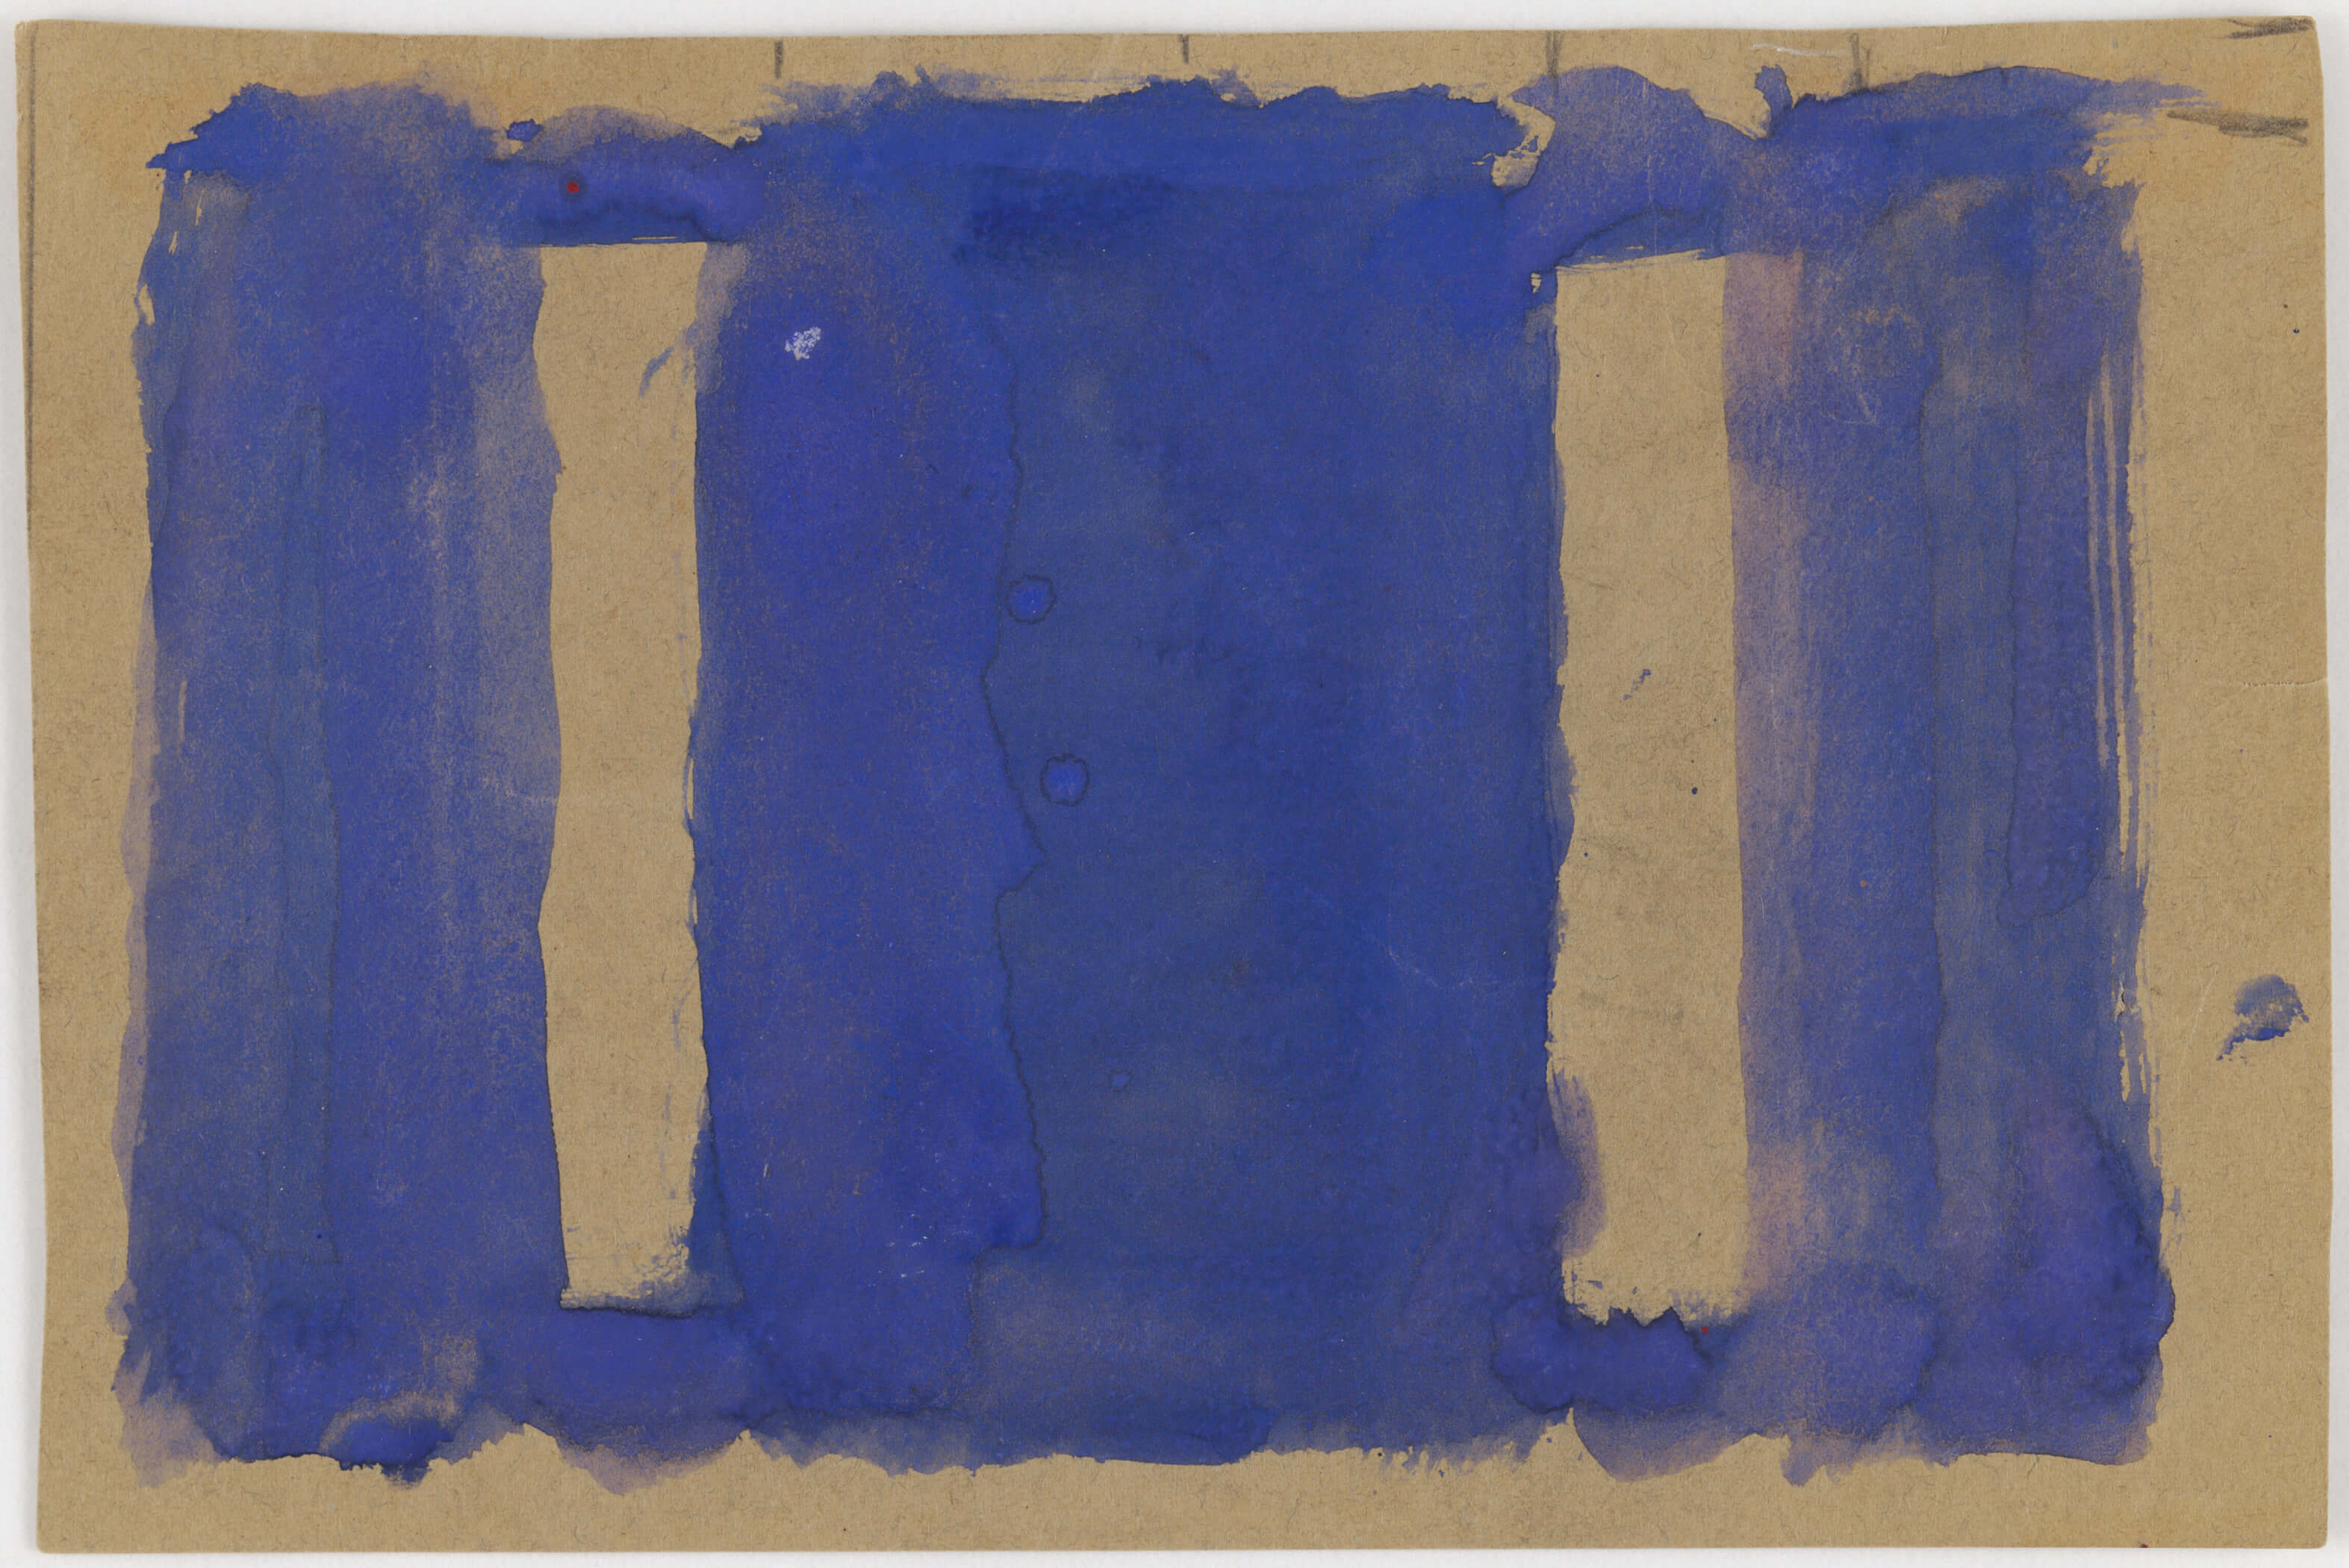 Mark Rothko, Untitled (Study for Harvard Mural), c. 1961, opaque watercolor on pale green construction paper. Harvard Art Museums/Fogg Museum, Gift of The Mark Rothko Foundation, Inc., 1986.627. © 2009 Kate Rothko Prizel and Christopher Rothko/ Artists Rights Society (ARS), New York. Photo: Harvard Art Museums, © President and Fellows of Harvard College.